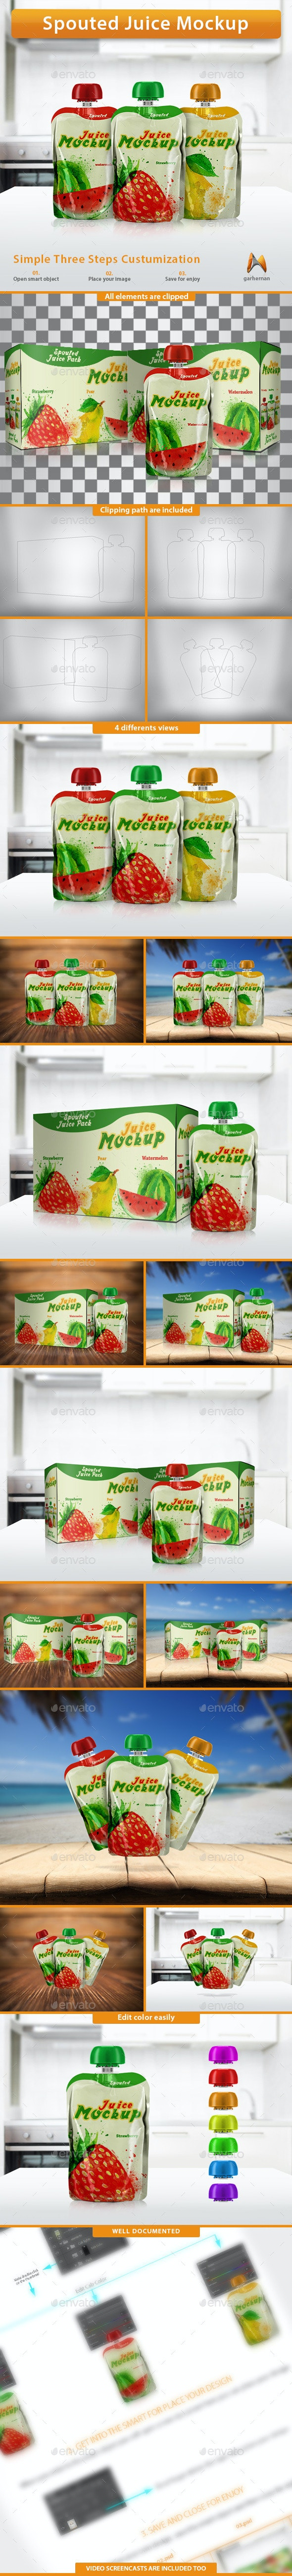 Spouted Juice Mockup - Product Mock-Ups Graphics